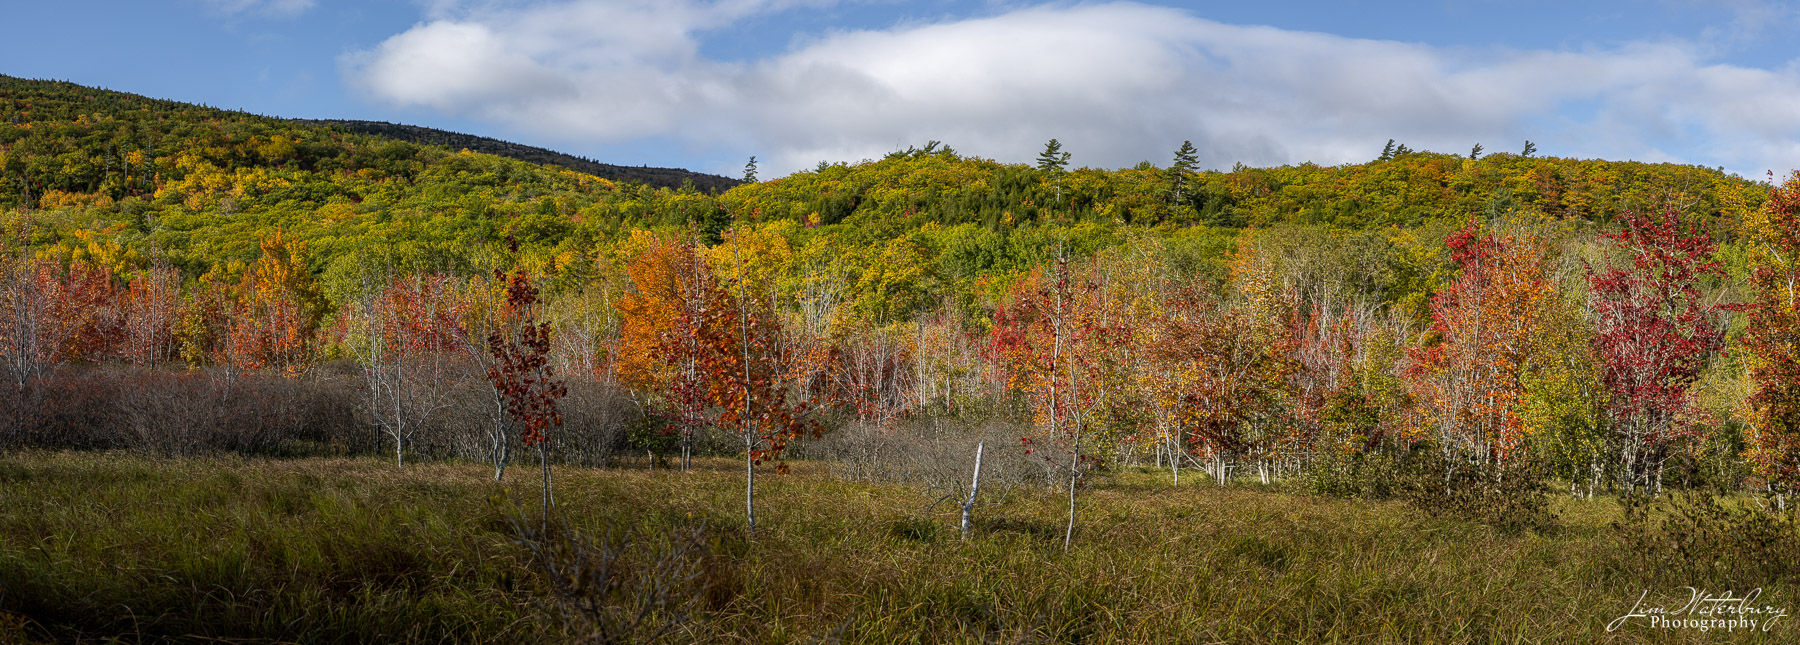 Panoramic image of fall colors on Mount Desert Island, Maine.